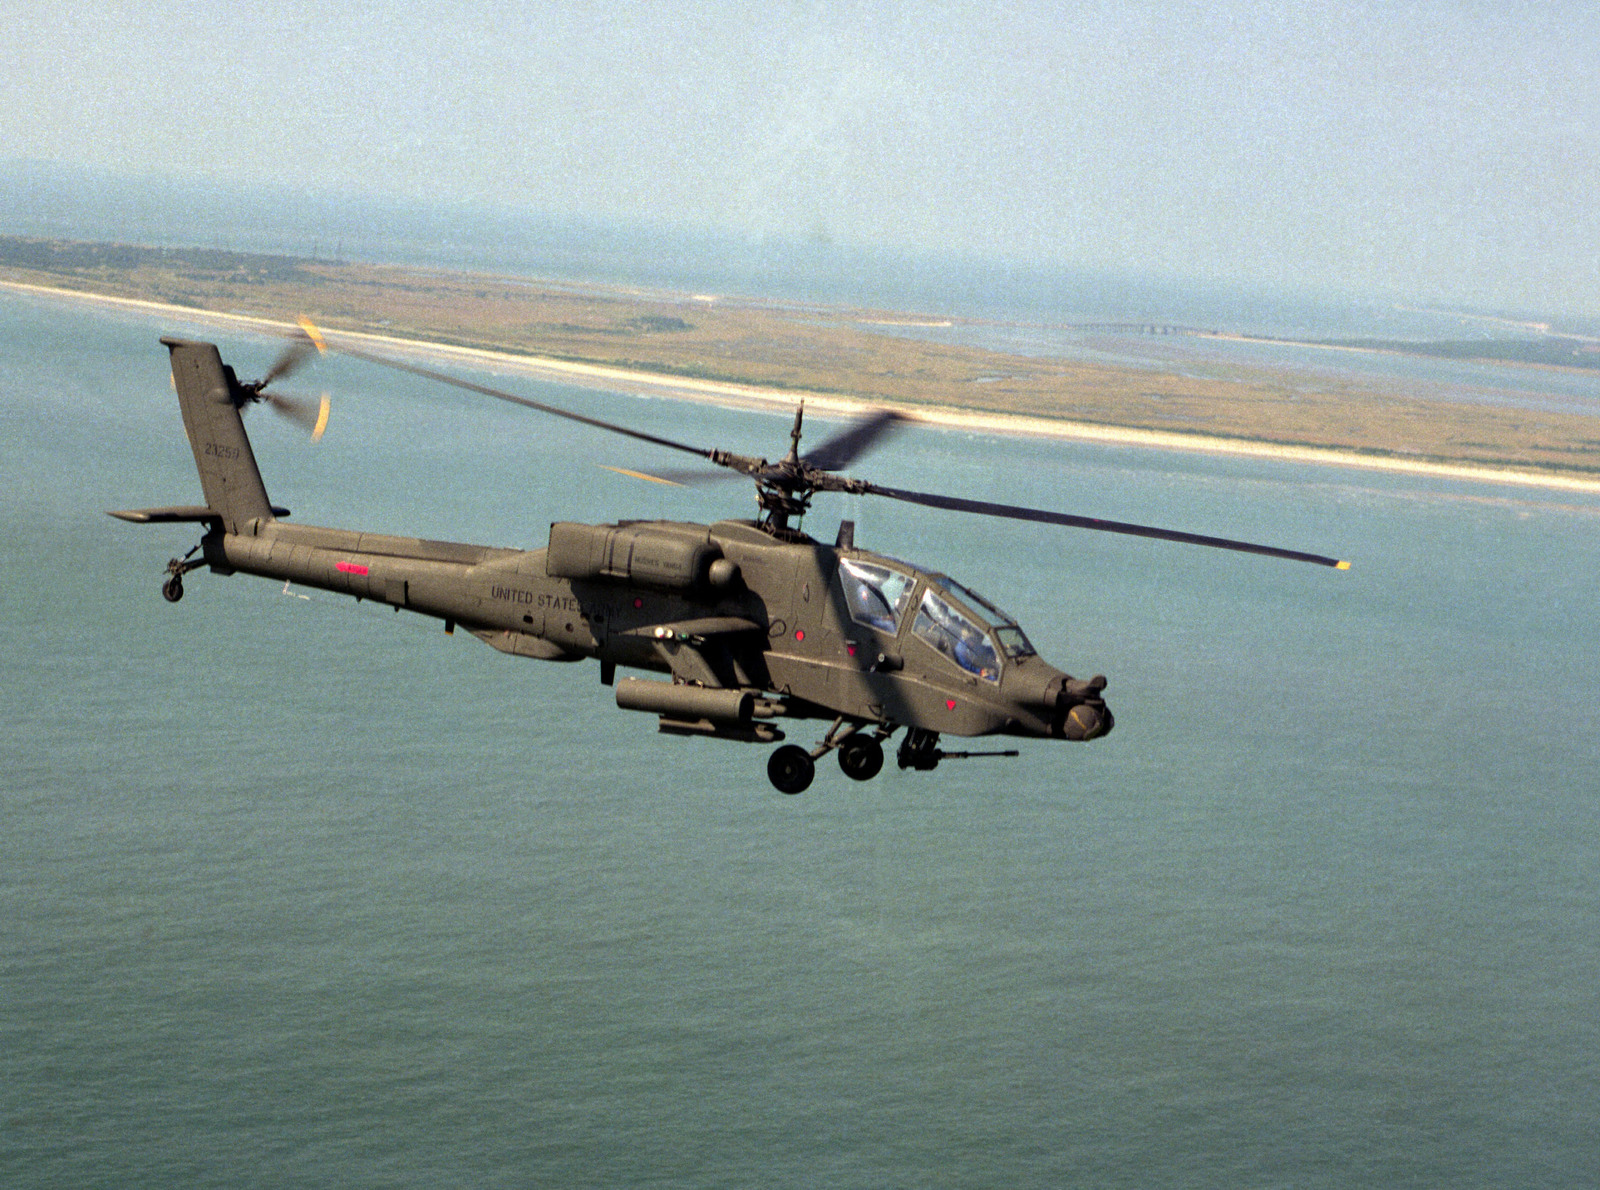 An air-to-air right side view of an AH-64A Apache helicopter - U.S. National Archives Public Domain Image